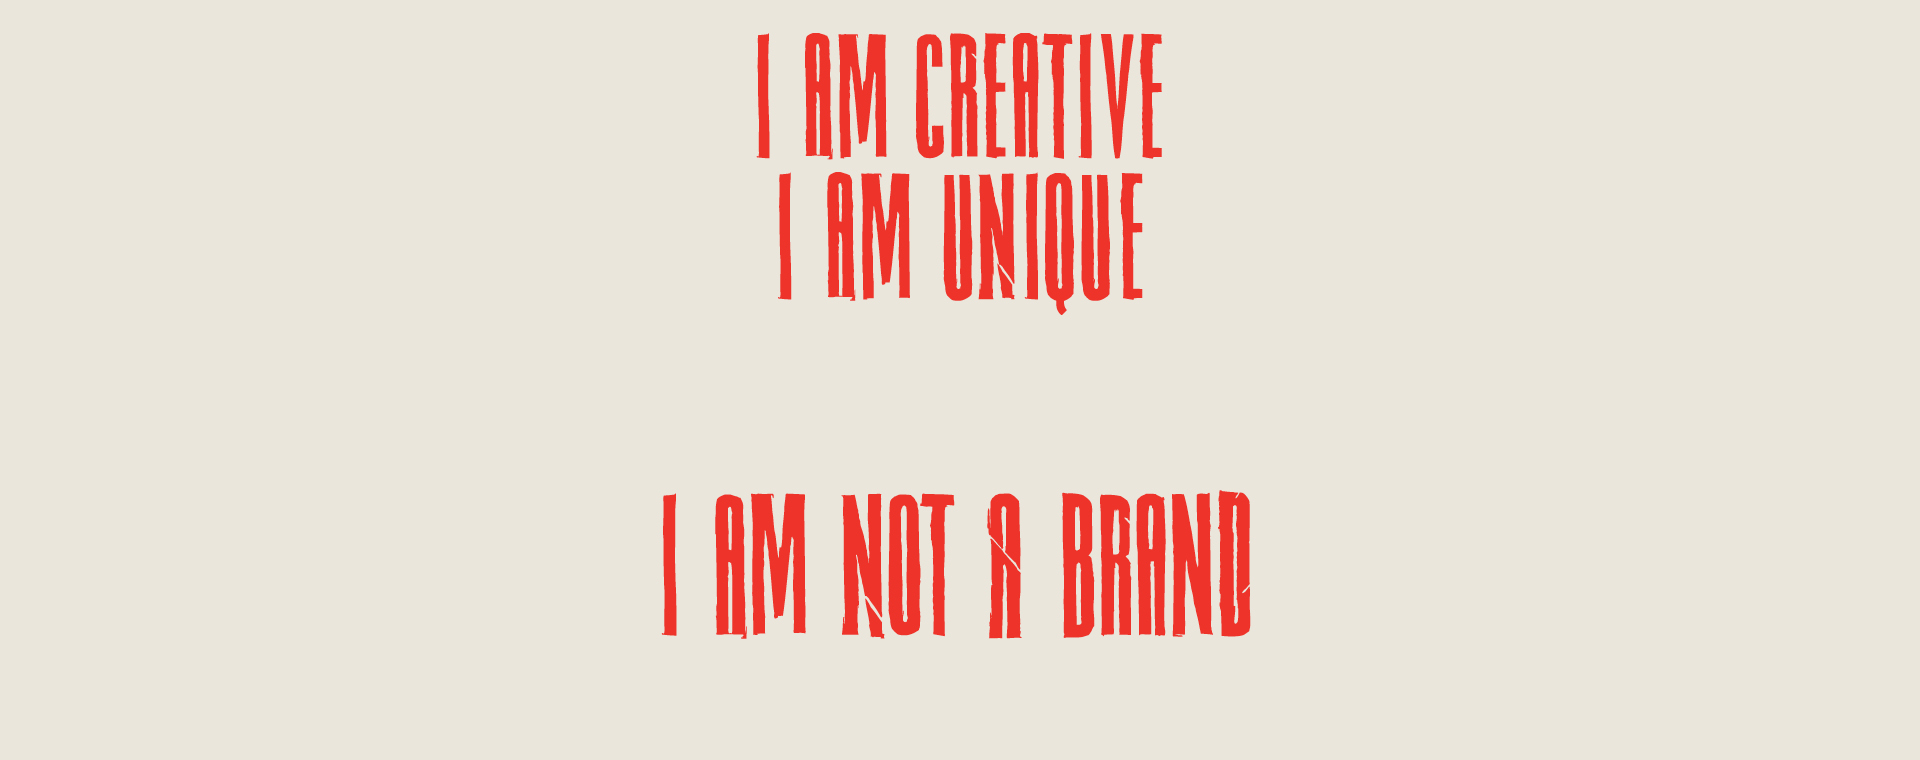 I Am Creative I Am Unique I Am Not A Brand in red branded logo typeface on cream coloured background.